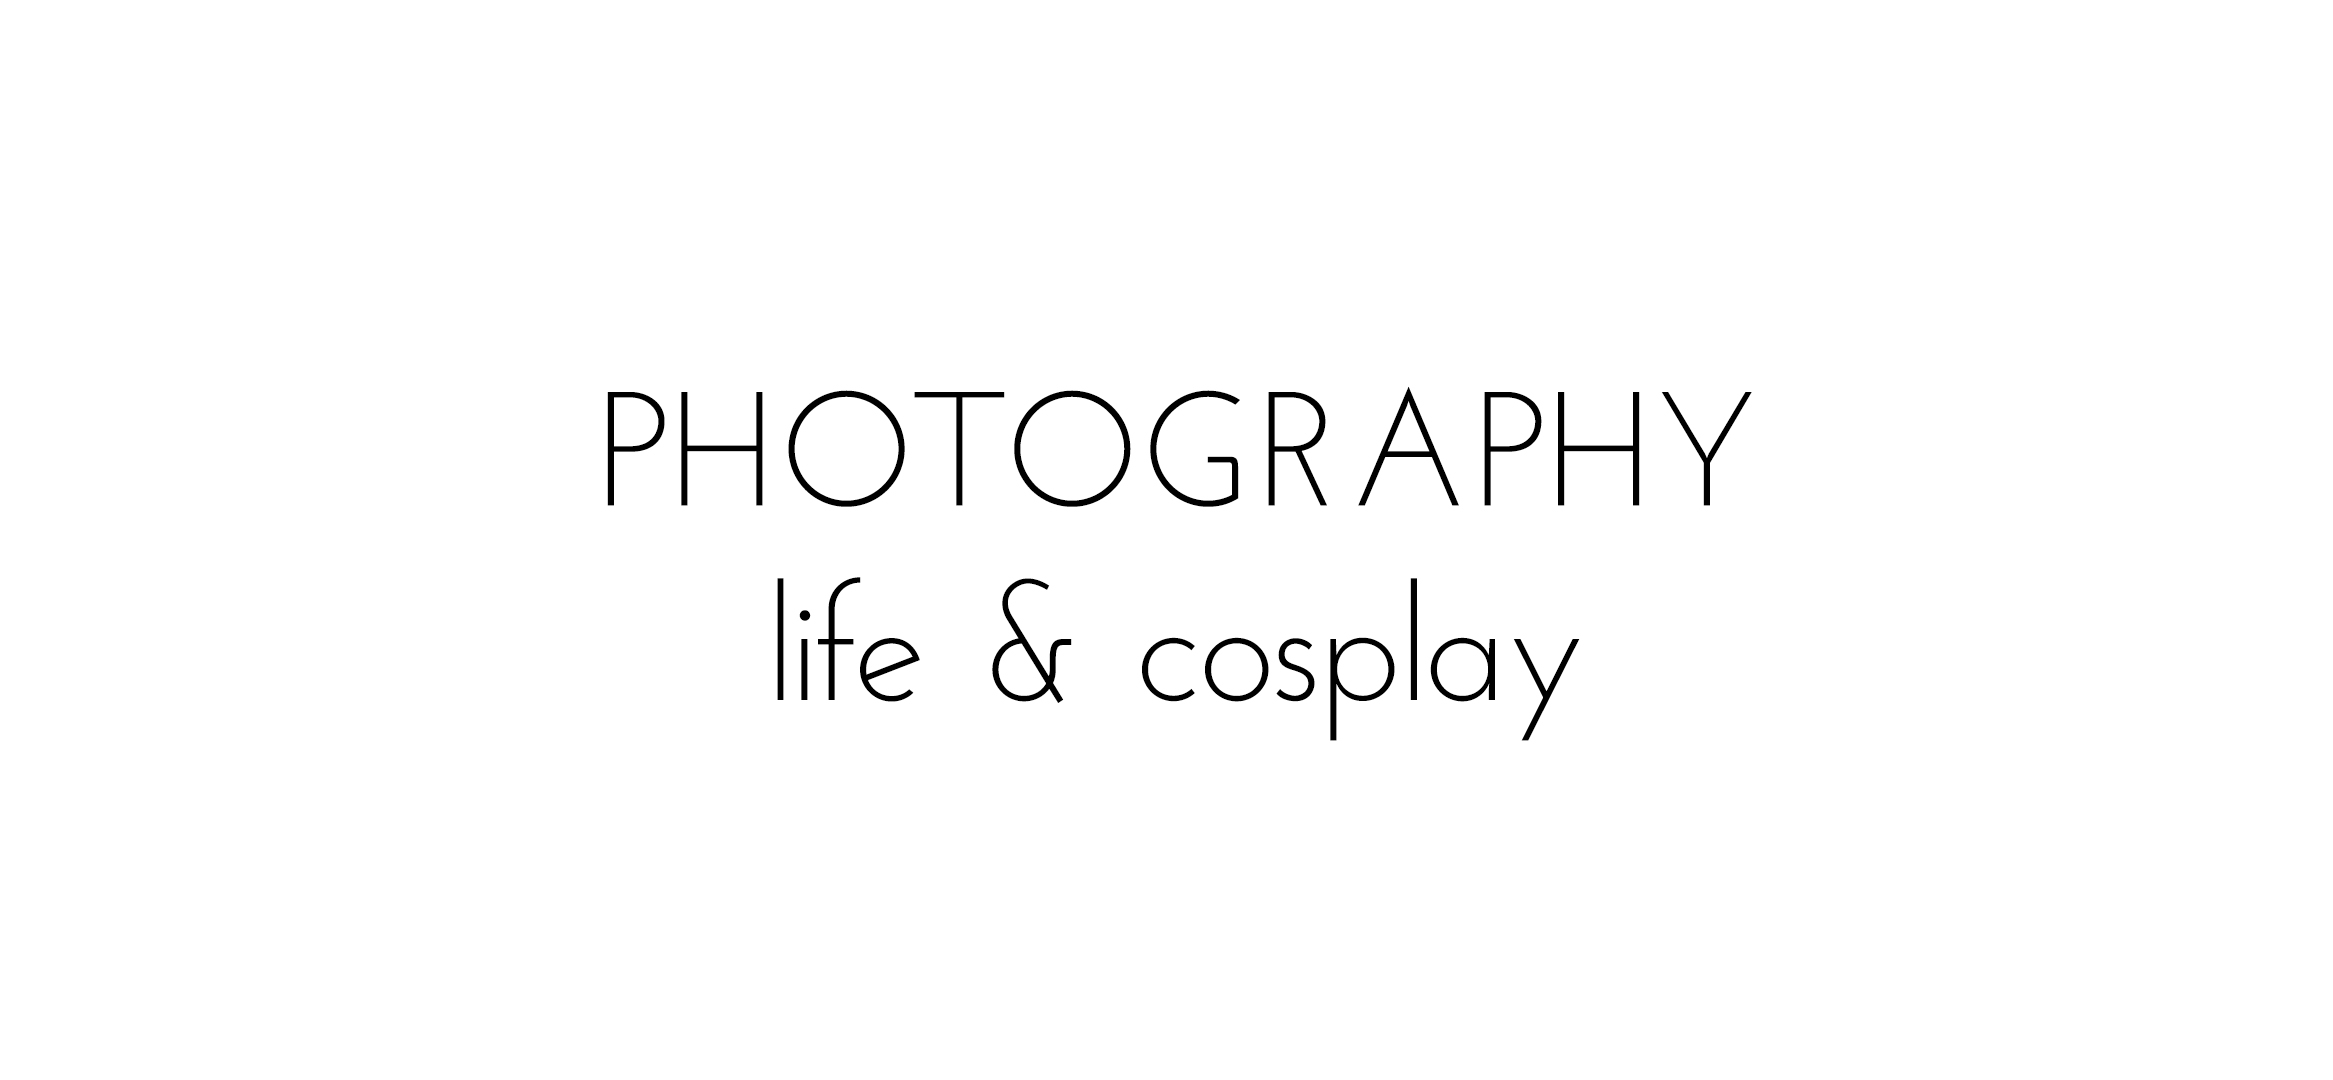 Cosplay and photography